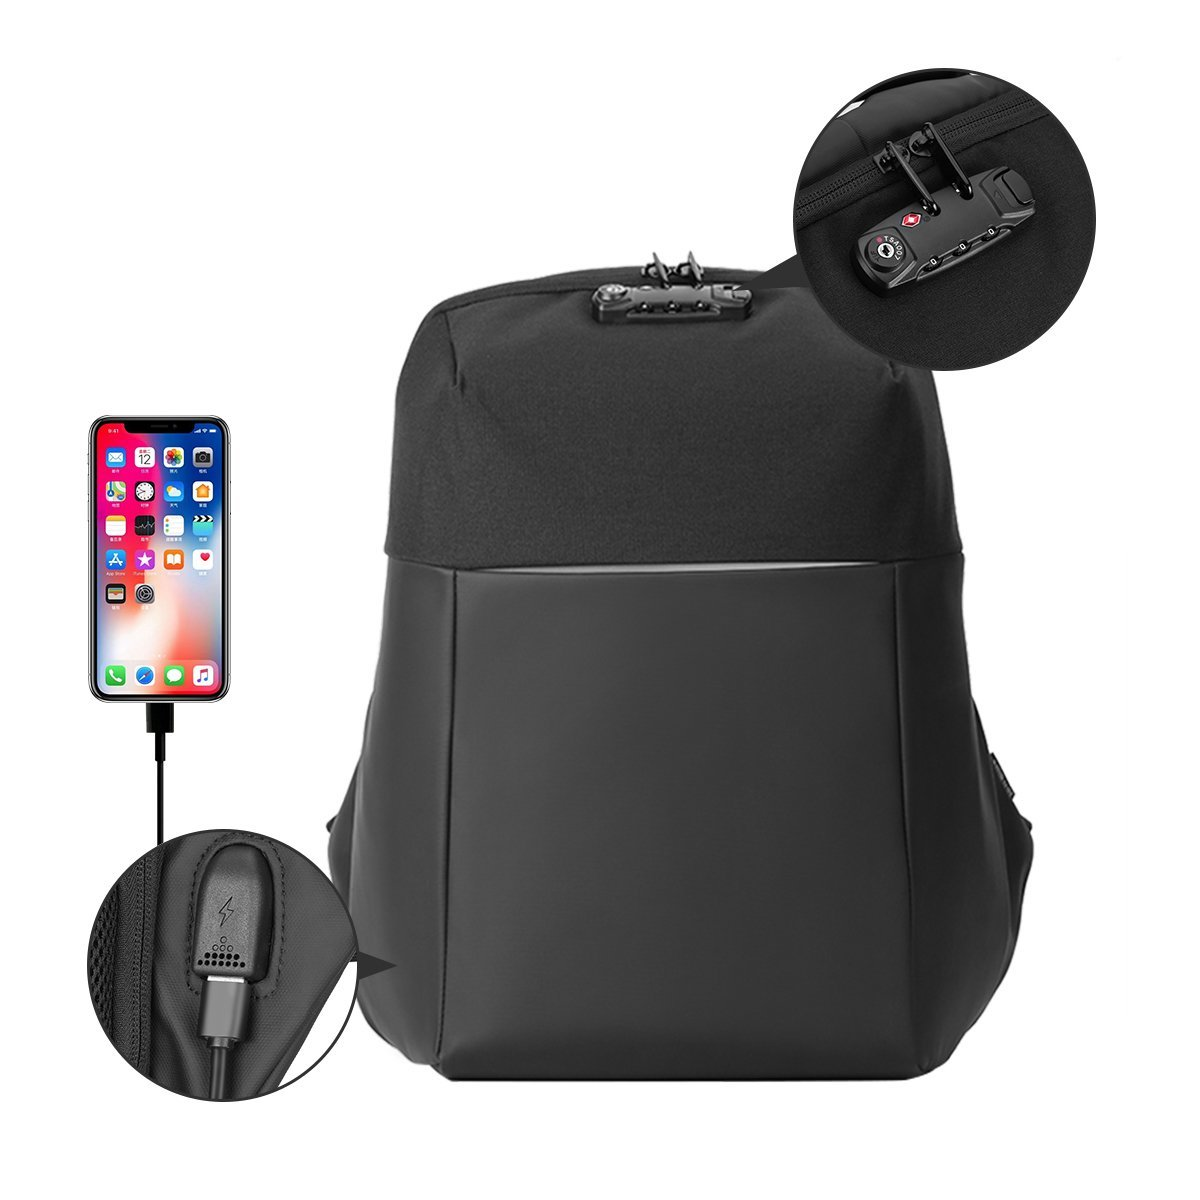 Waterproof bag| shockproof case| laptop| anti theft| protect| security| bag| stylish| sporty